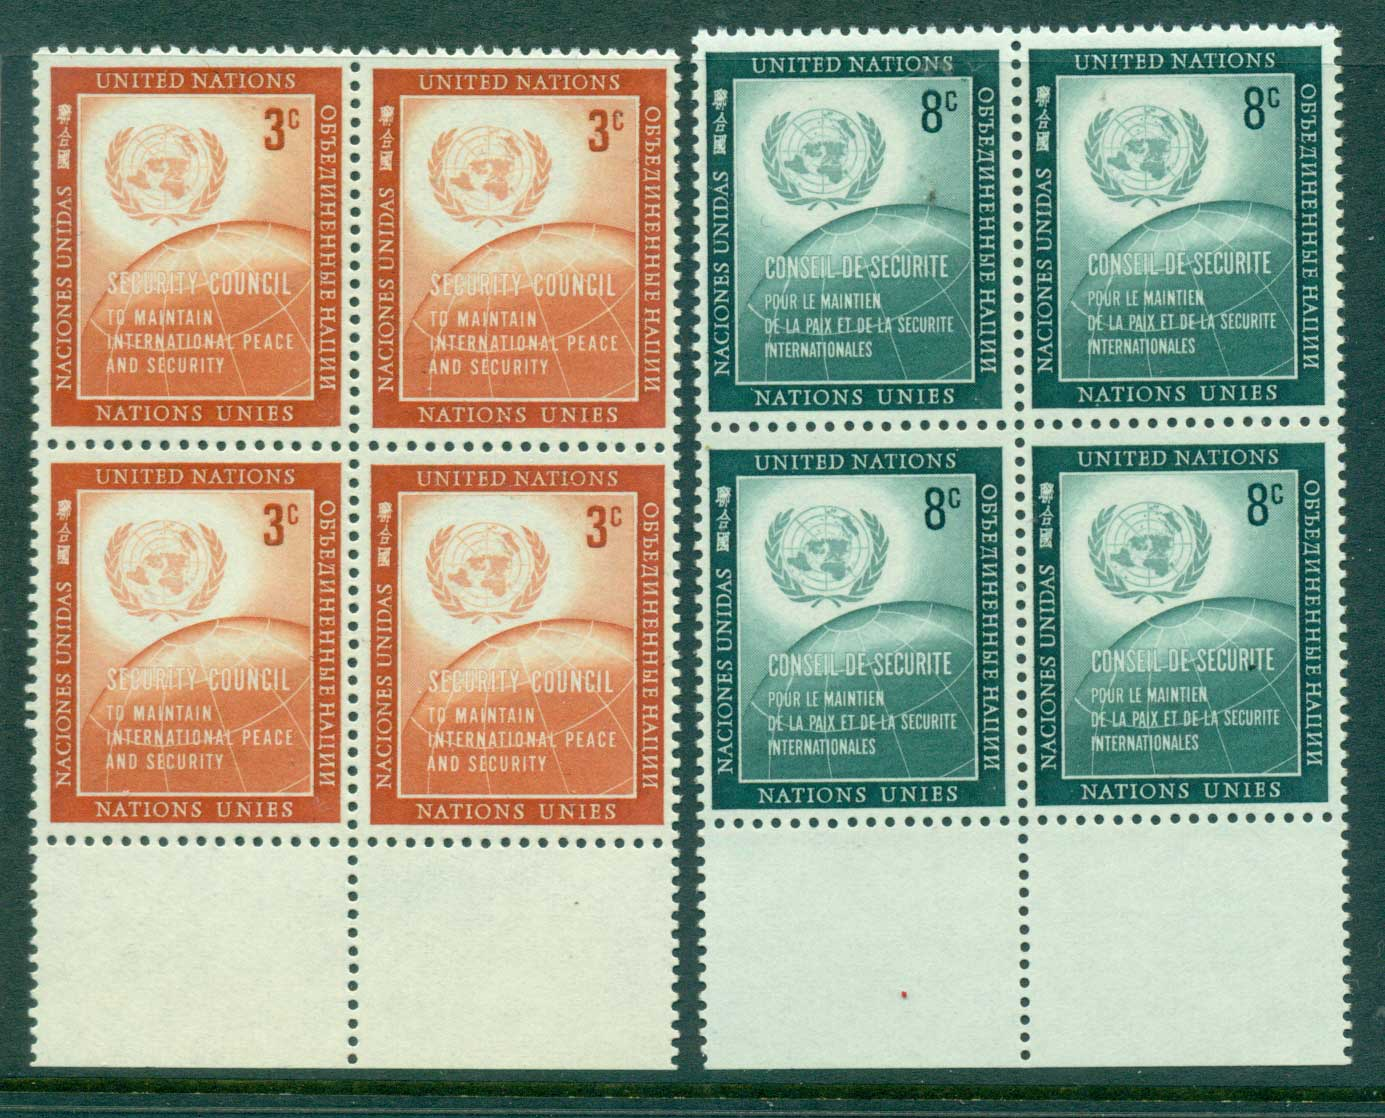 UN New York 1957 Honouring the Security Council Blk 4 MUH lot40896